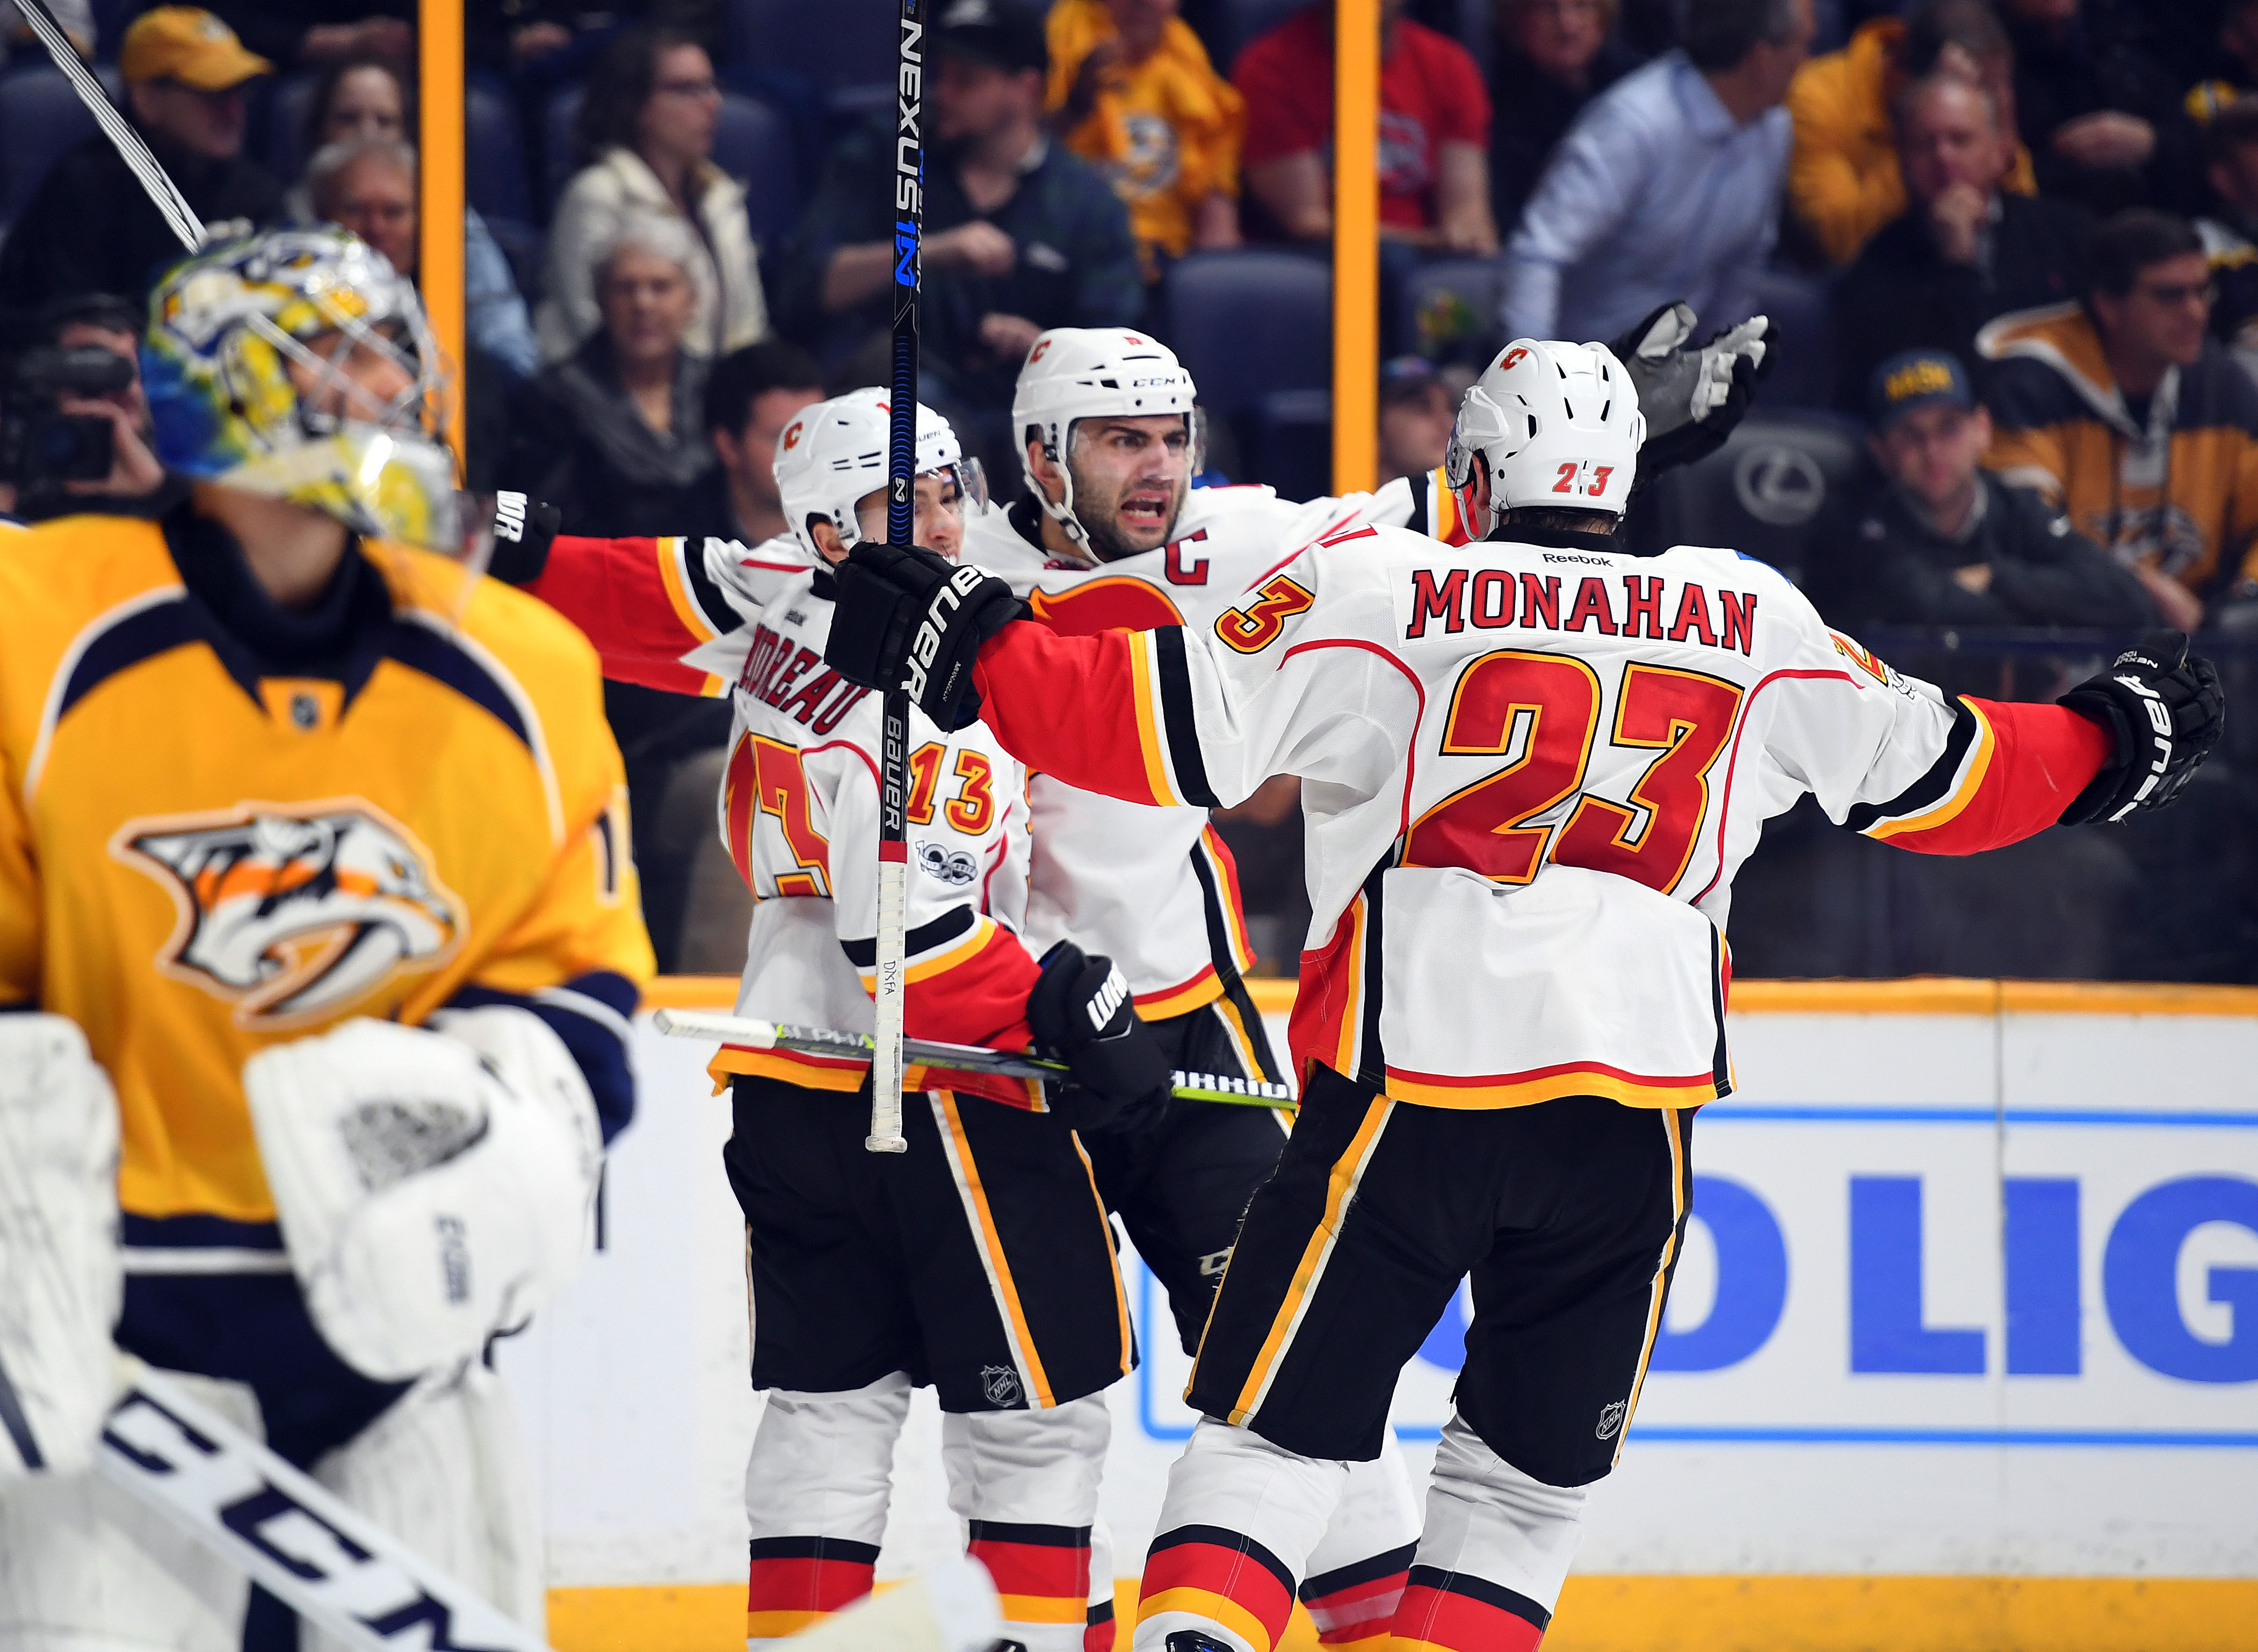 9892269-nhl-calgary-flames-at-nashville-predators